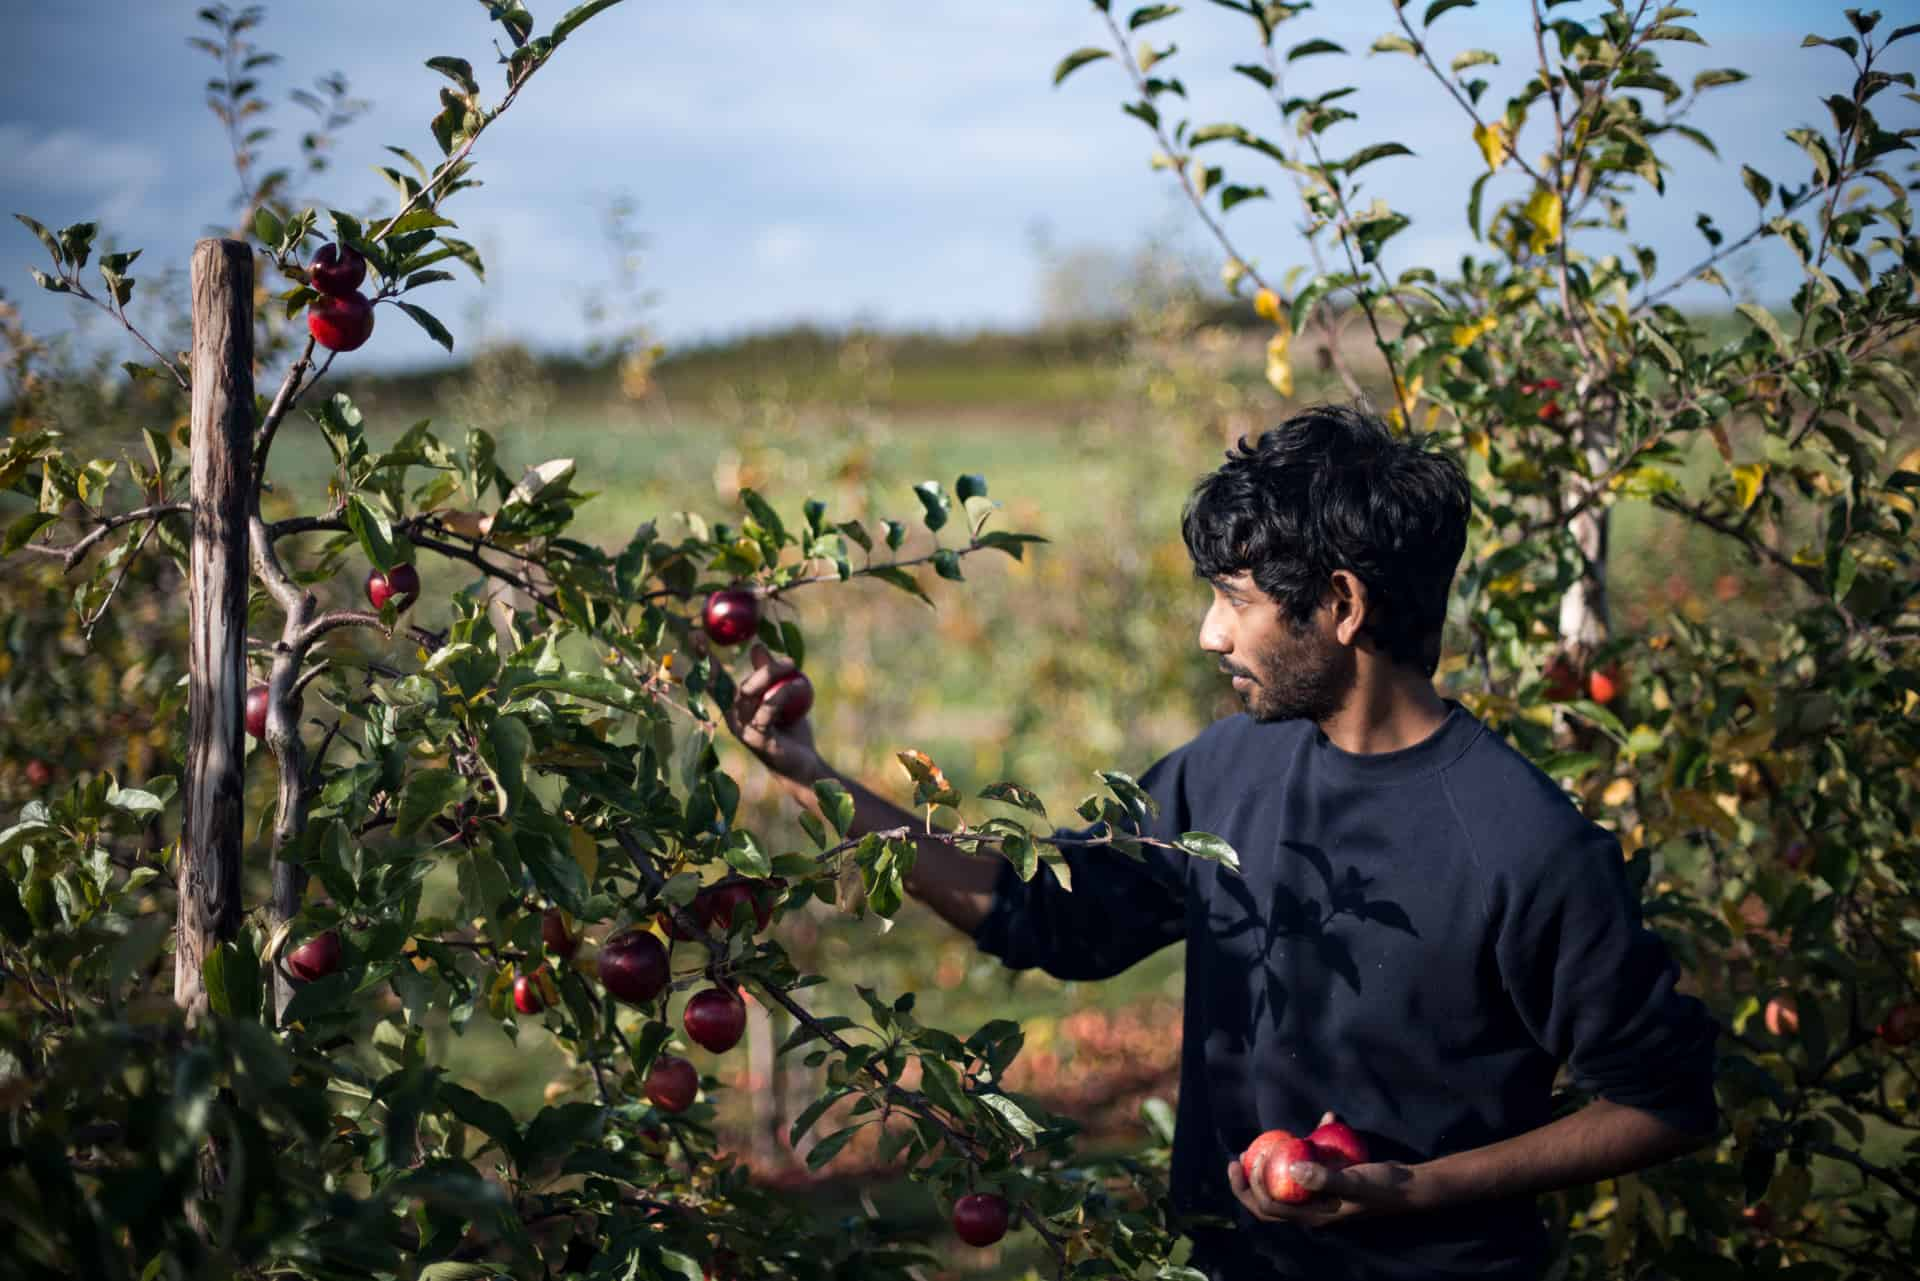 Gleaning to reduce food waste - Documentary Photography by Chris King for Open Eye Media